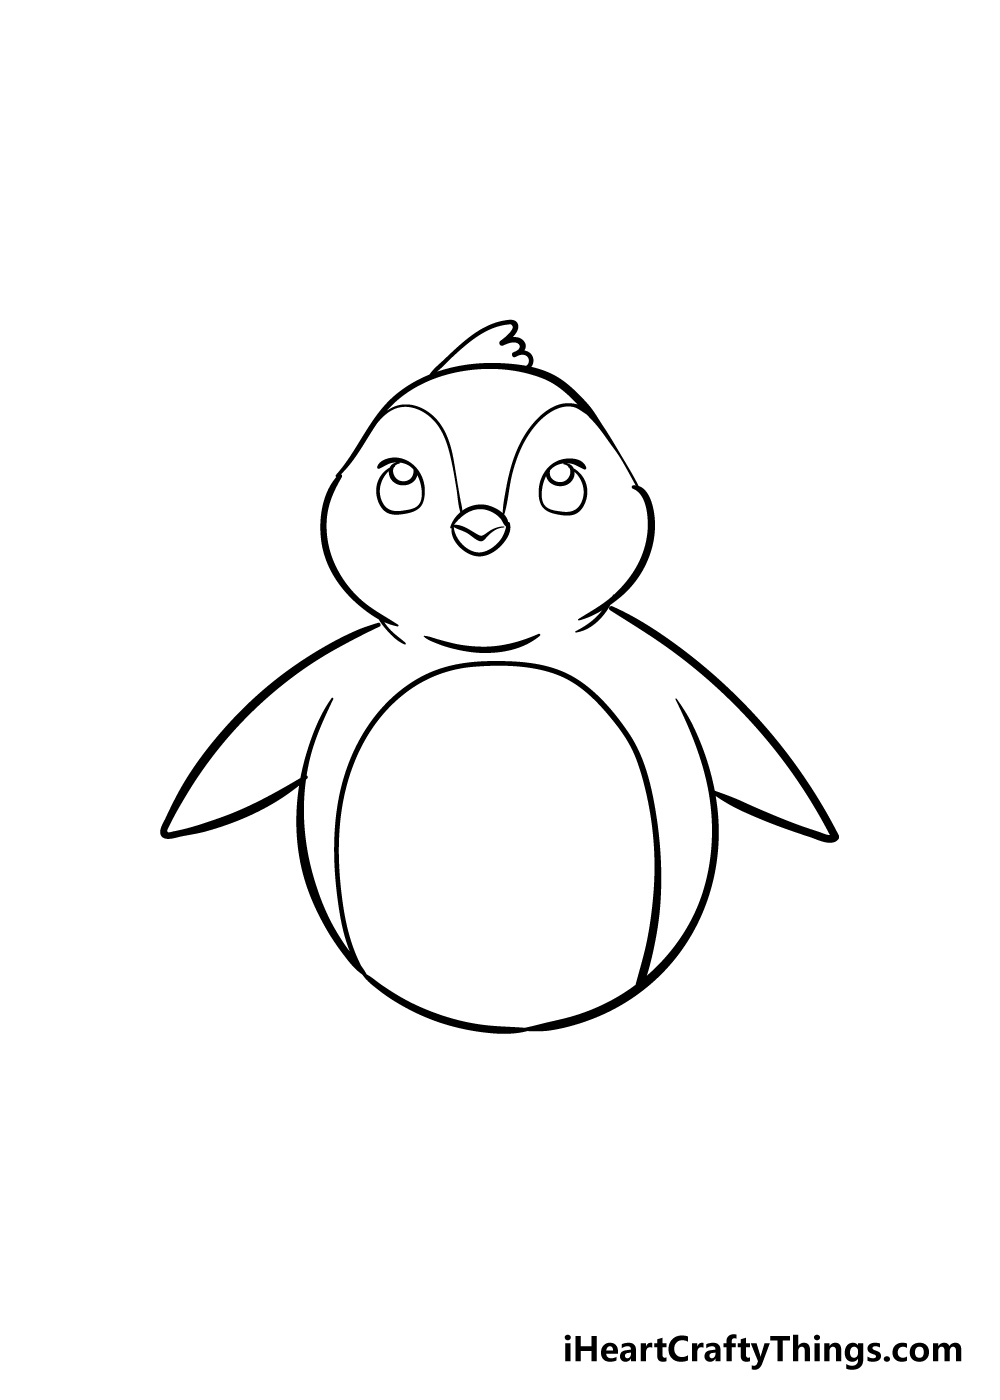 penguin drawing step 5